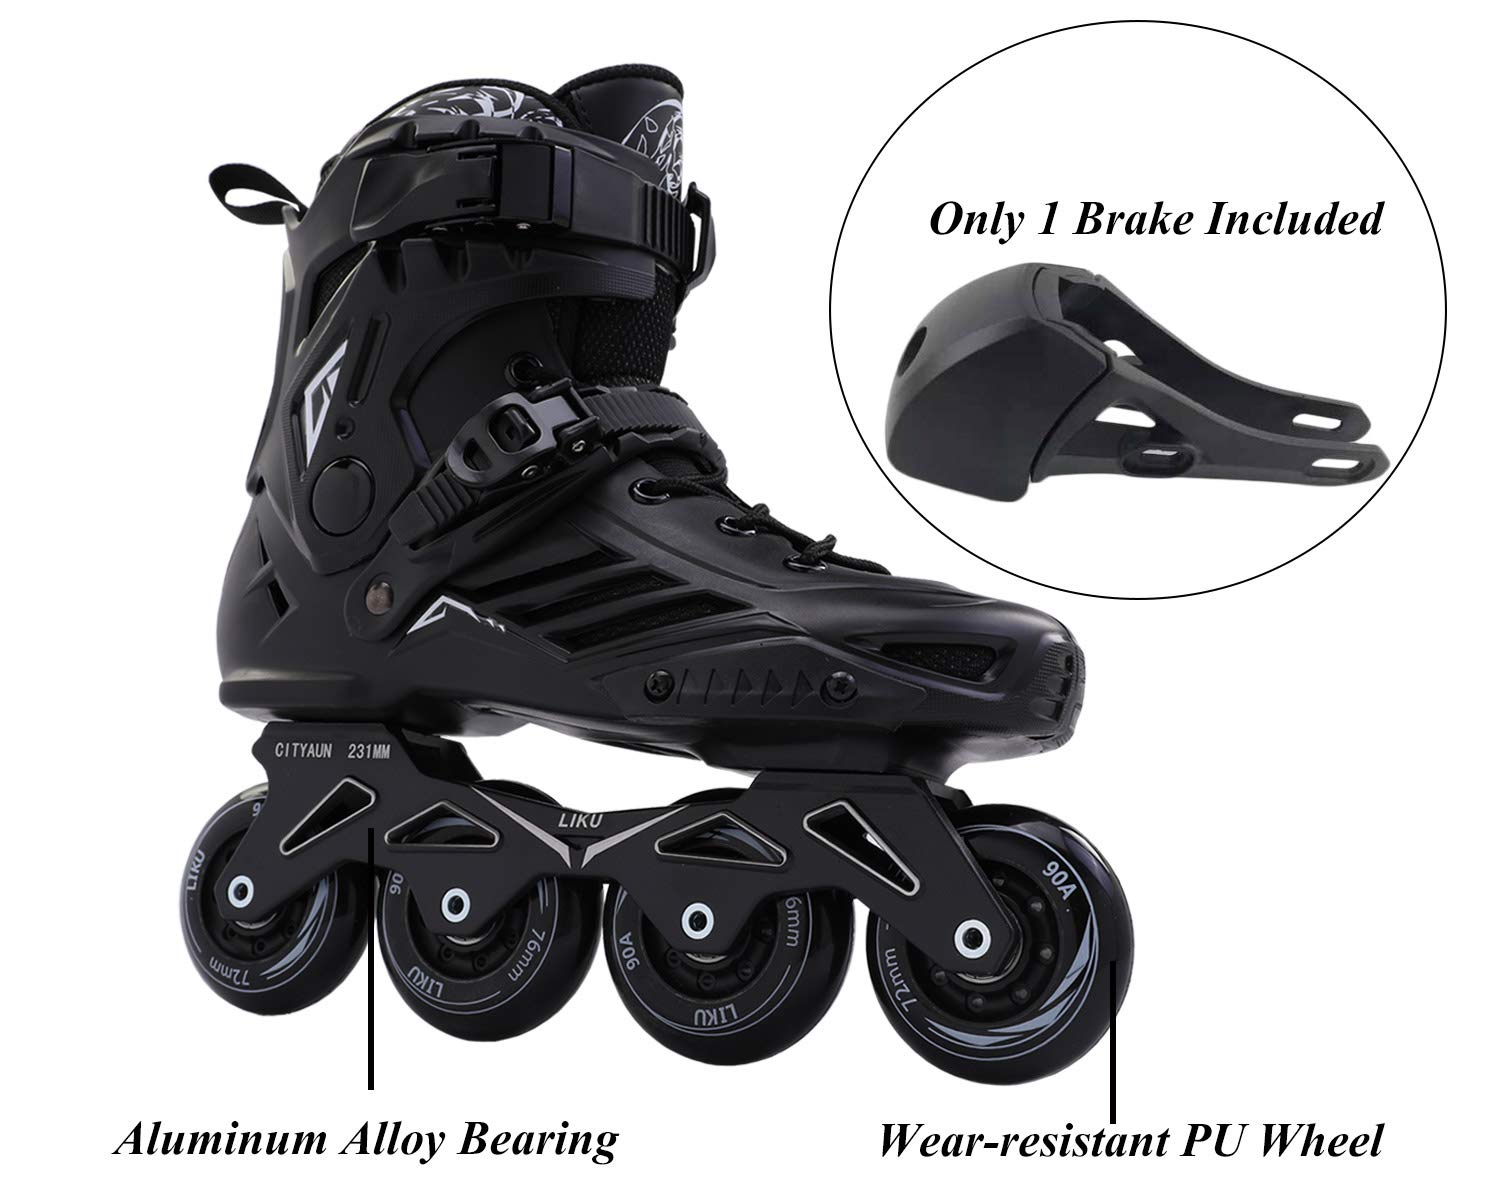 LIKU Fitness Professional Inline Roller Skates Women Men Adult Youth Black (Men 6.5,Women 7.5) by LIKU (Image #2)